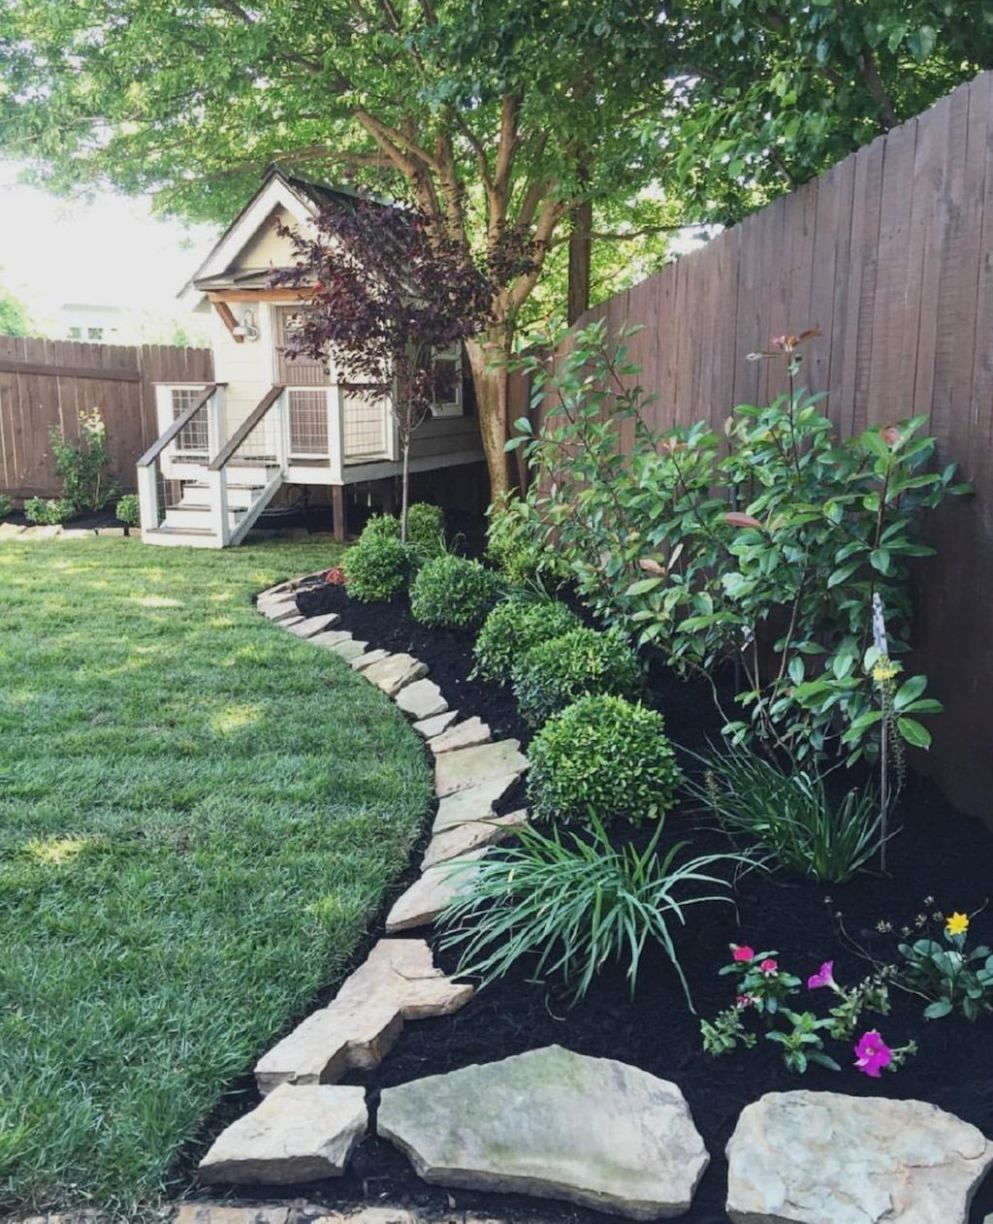 landscaping ideas queensland #landscapingideas | Outdoor garden ...